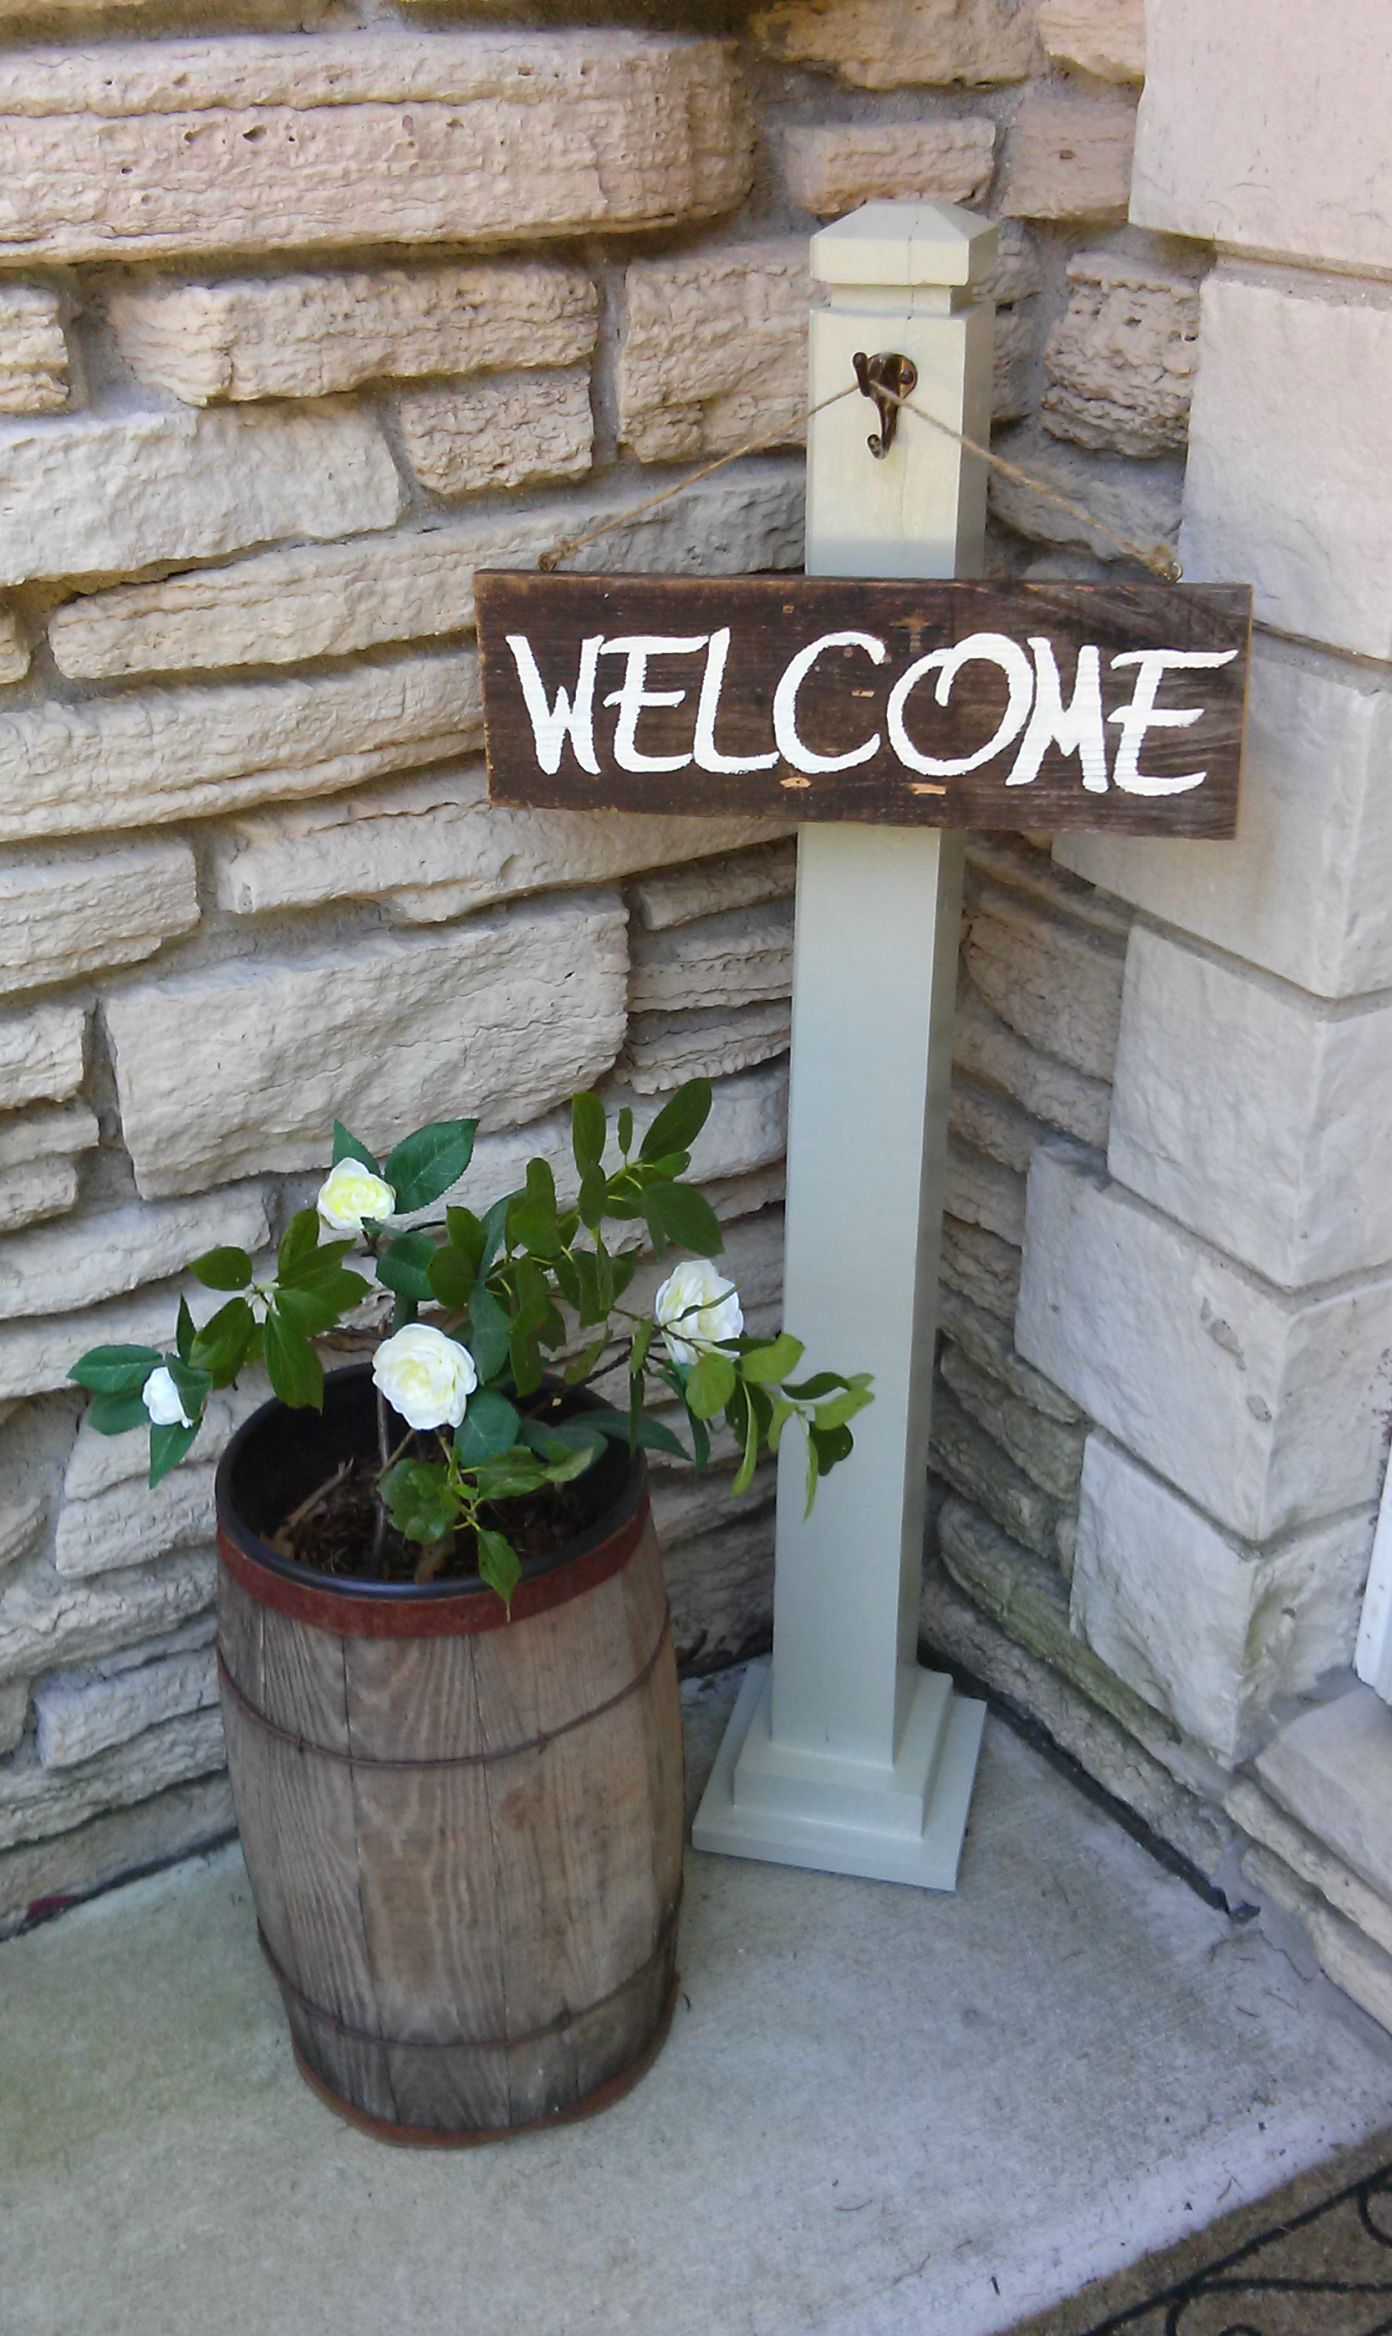 10 Diy Welcome Signs For Your Front Porch - diy Thought